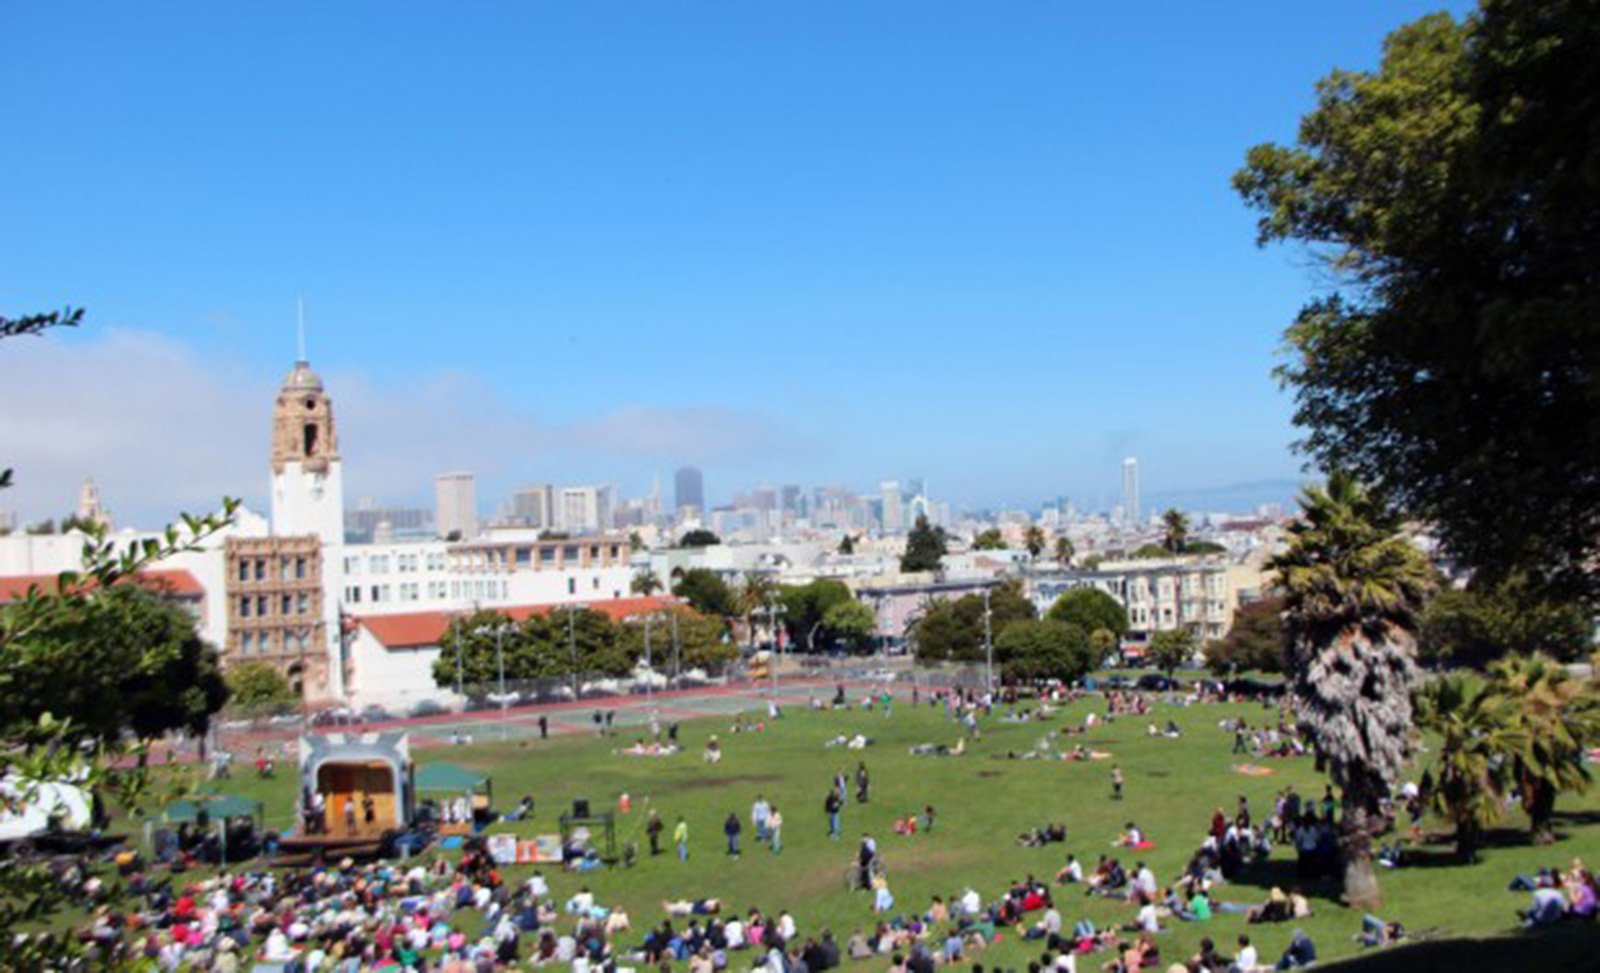 Dolores Park Opening Postponed, New Date TBD